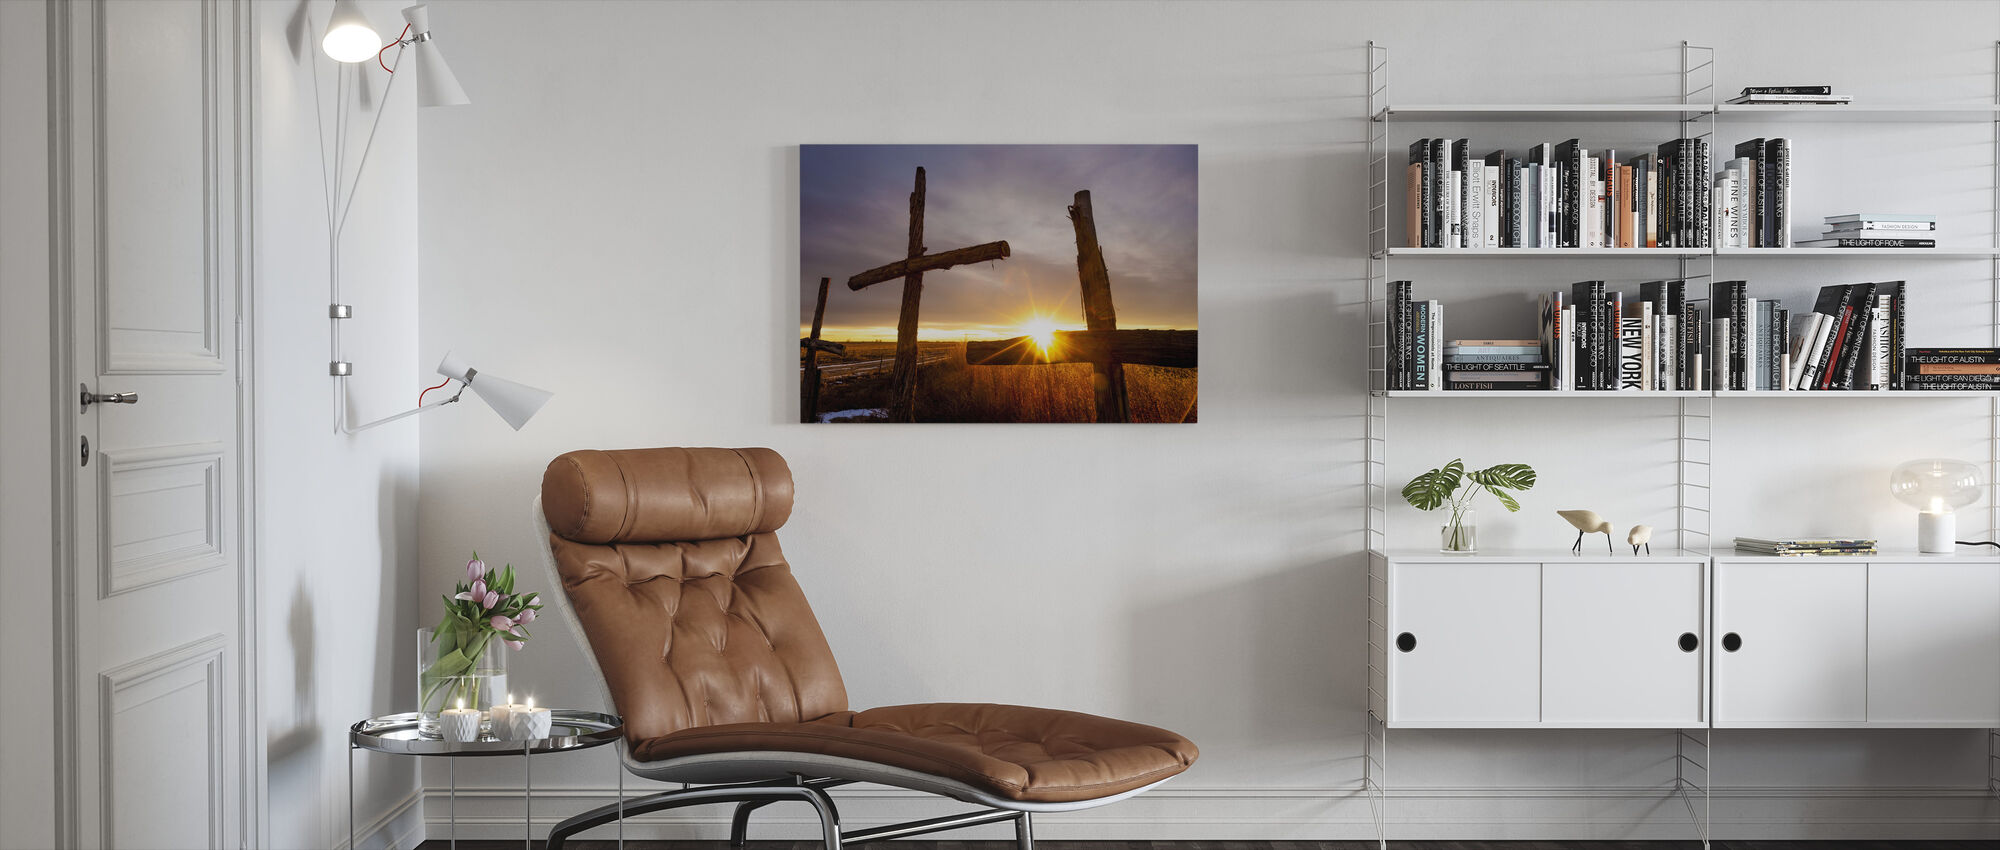 Drie - Canvas print - Woonkamer